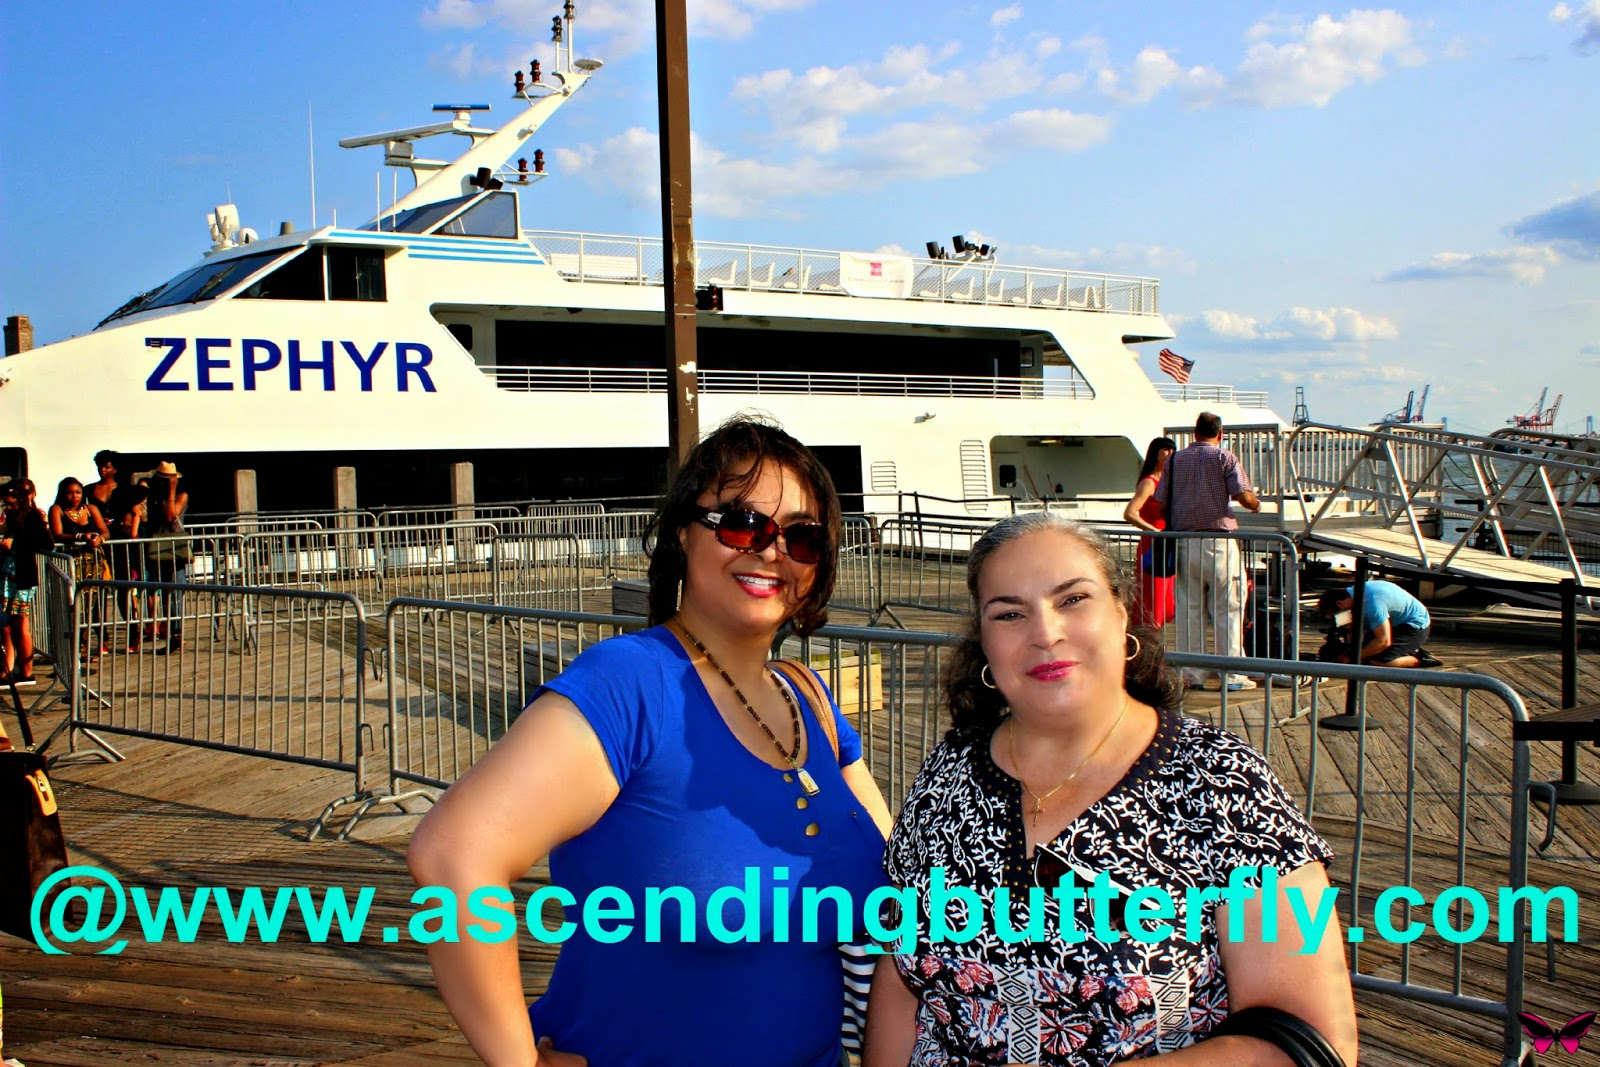 beautypress spotlight day in New York City aboard Zephyr Yacht August 2014